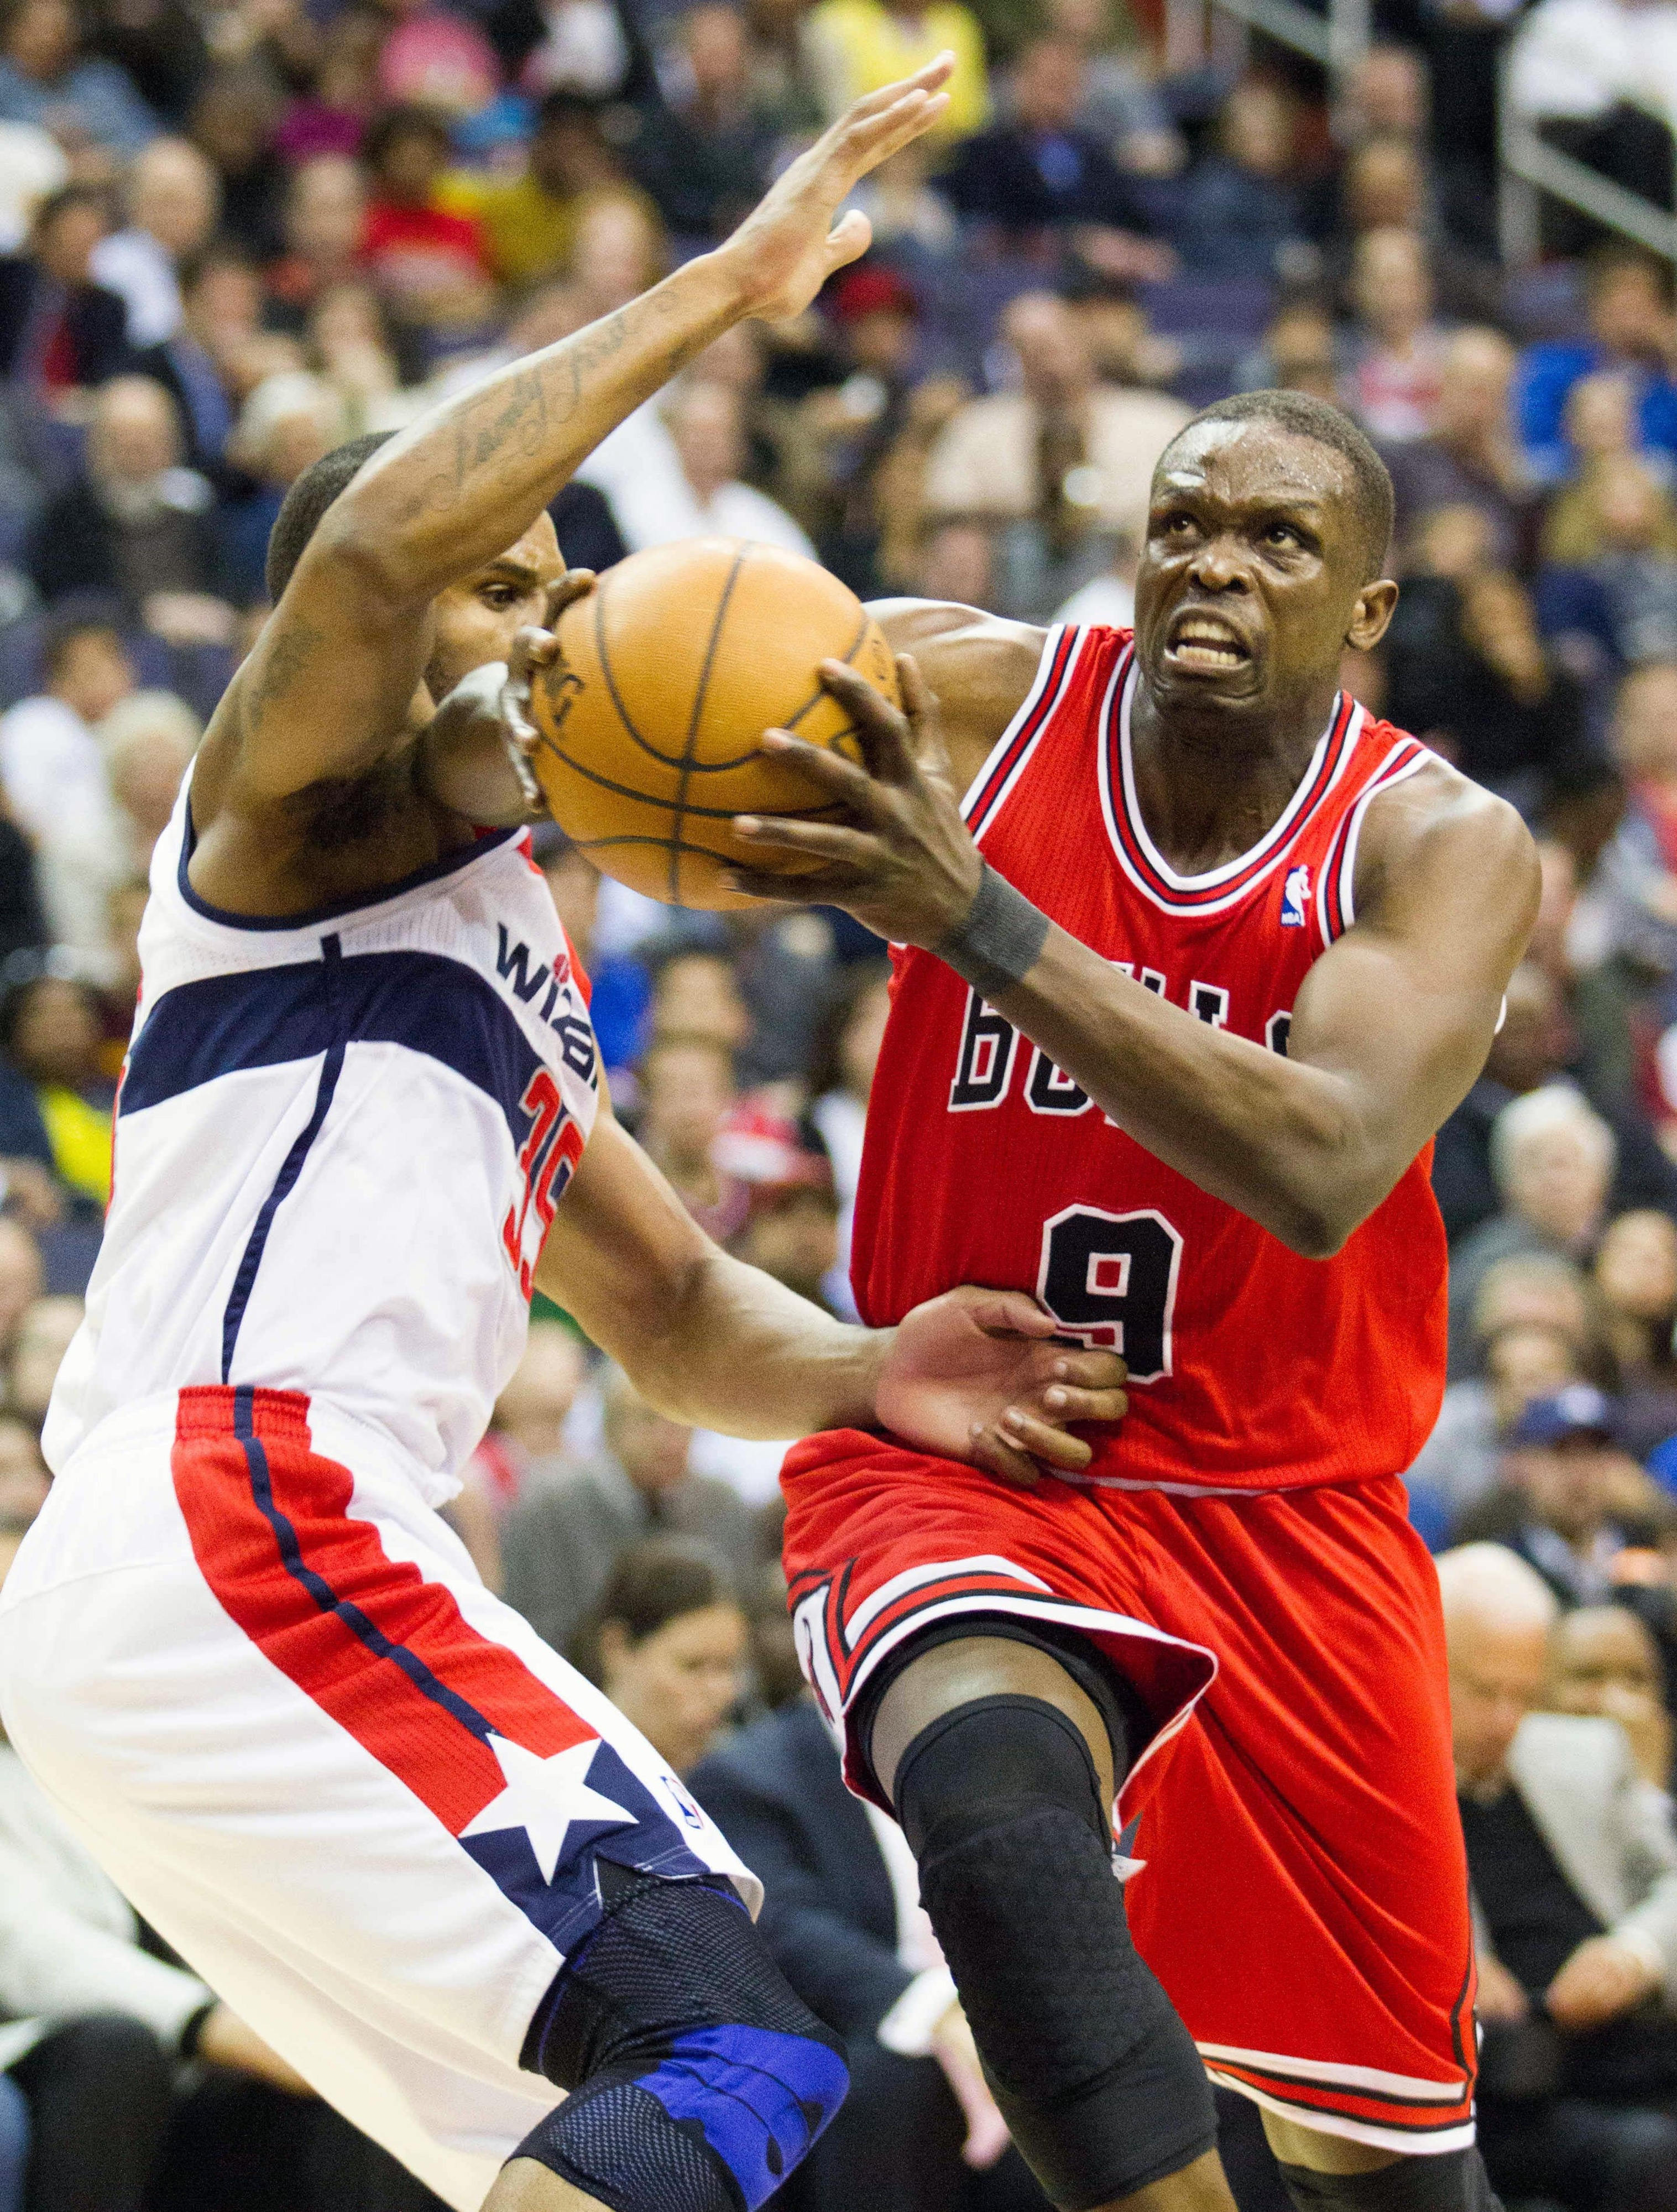 Luol Deng trade for Wizards' 3rd draft pick discussed, according to report